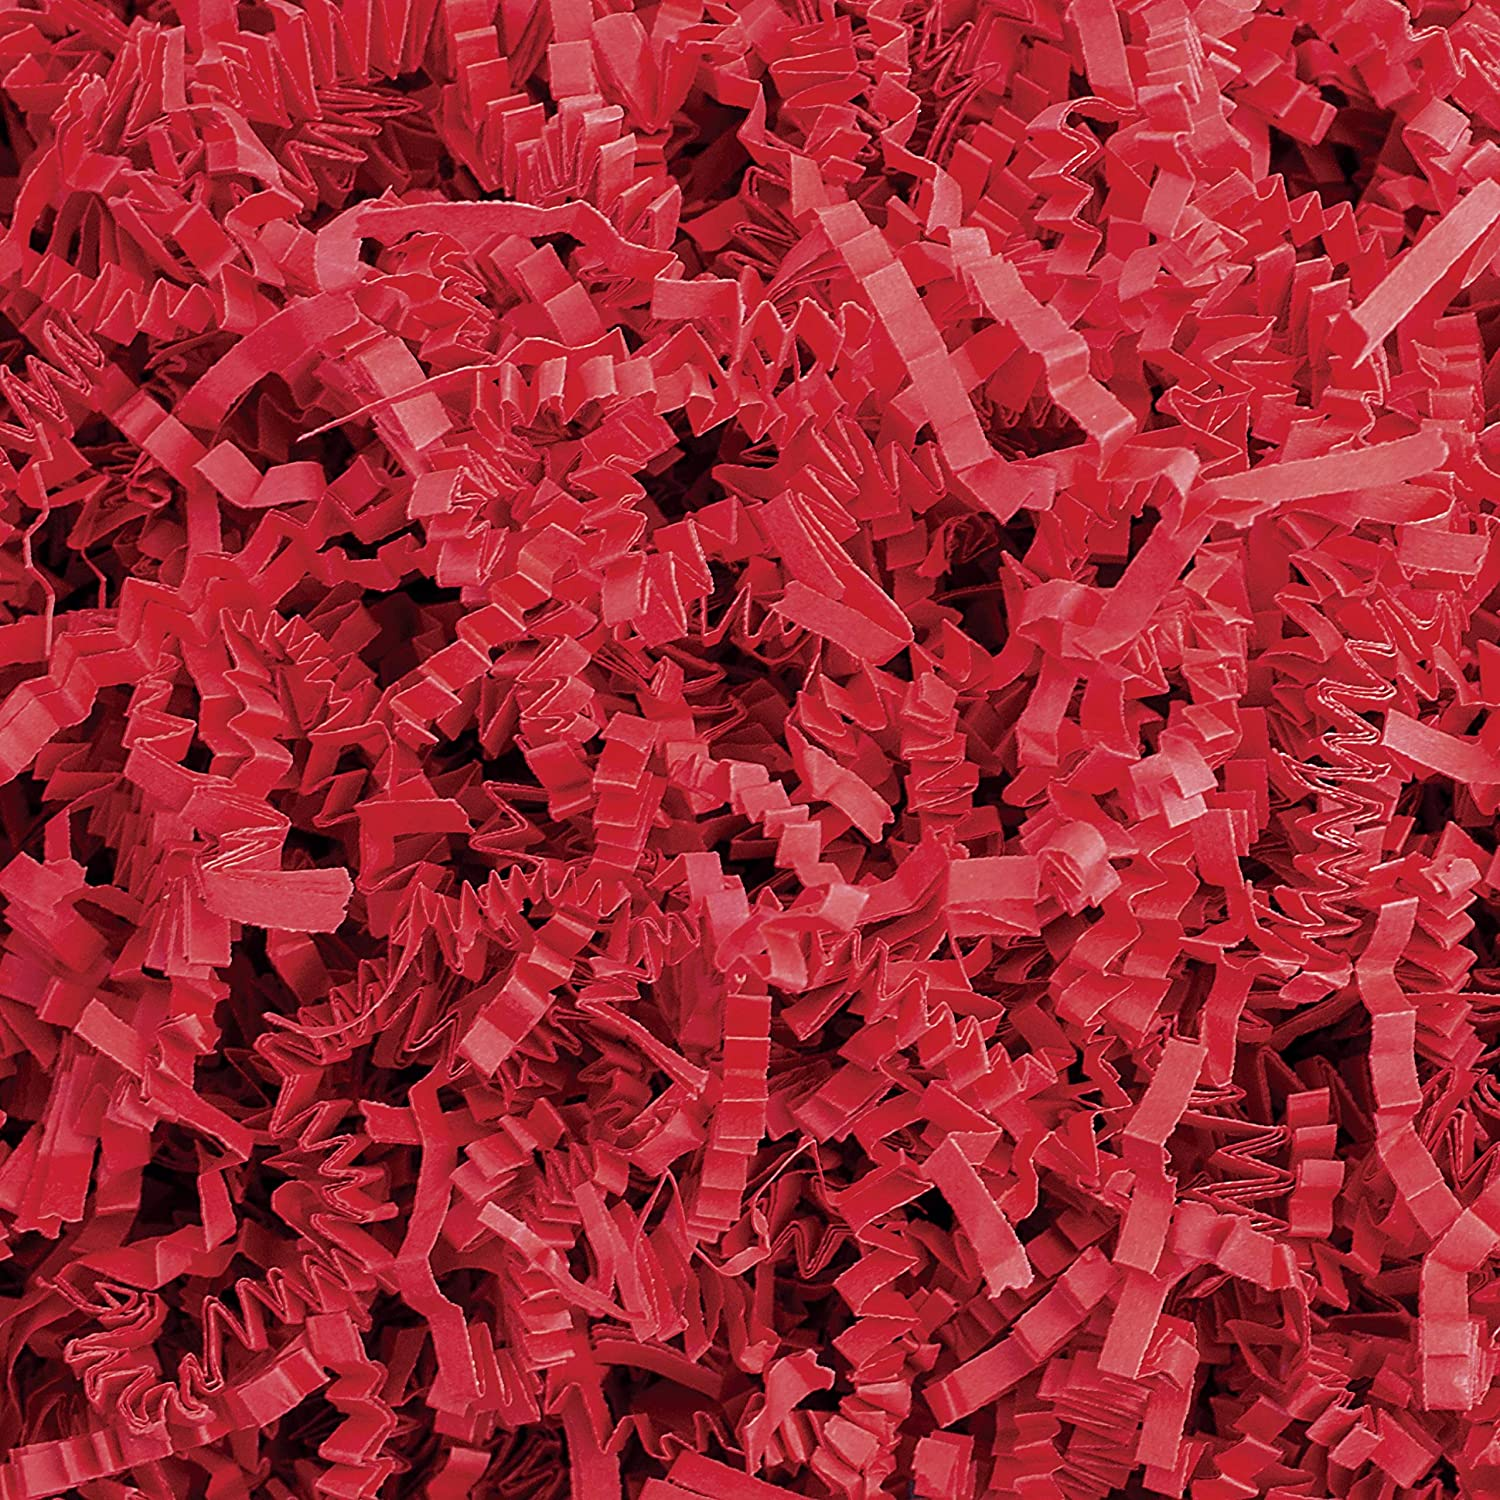 Crinkle Cut Paper Shred Filler (1 LB) for Gift Wrapping & Basket Filling - Red | MagicWater Supply: Everything Else